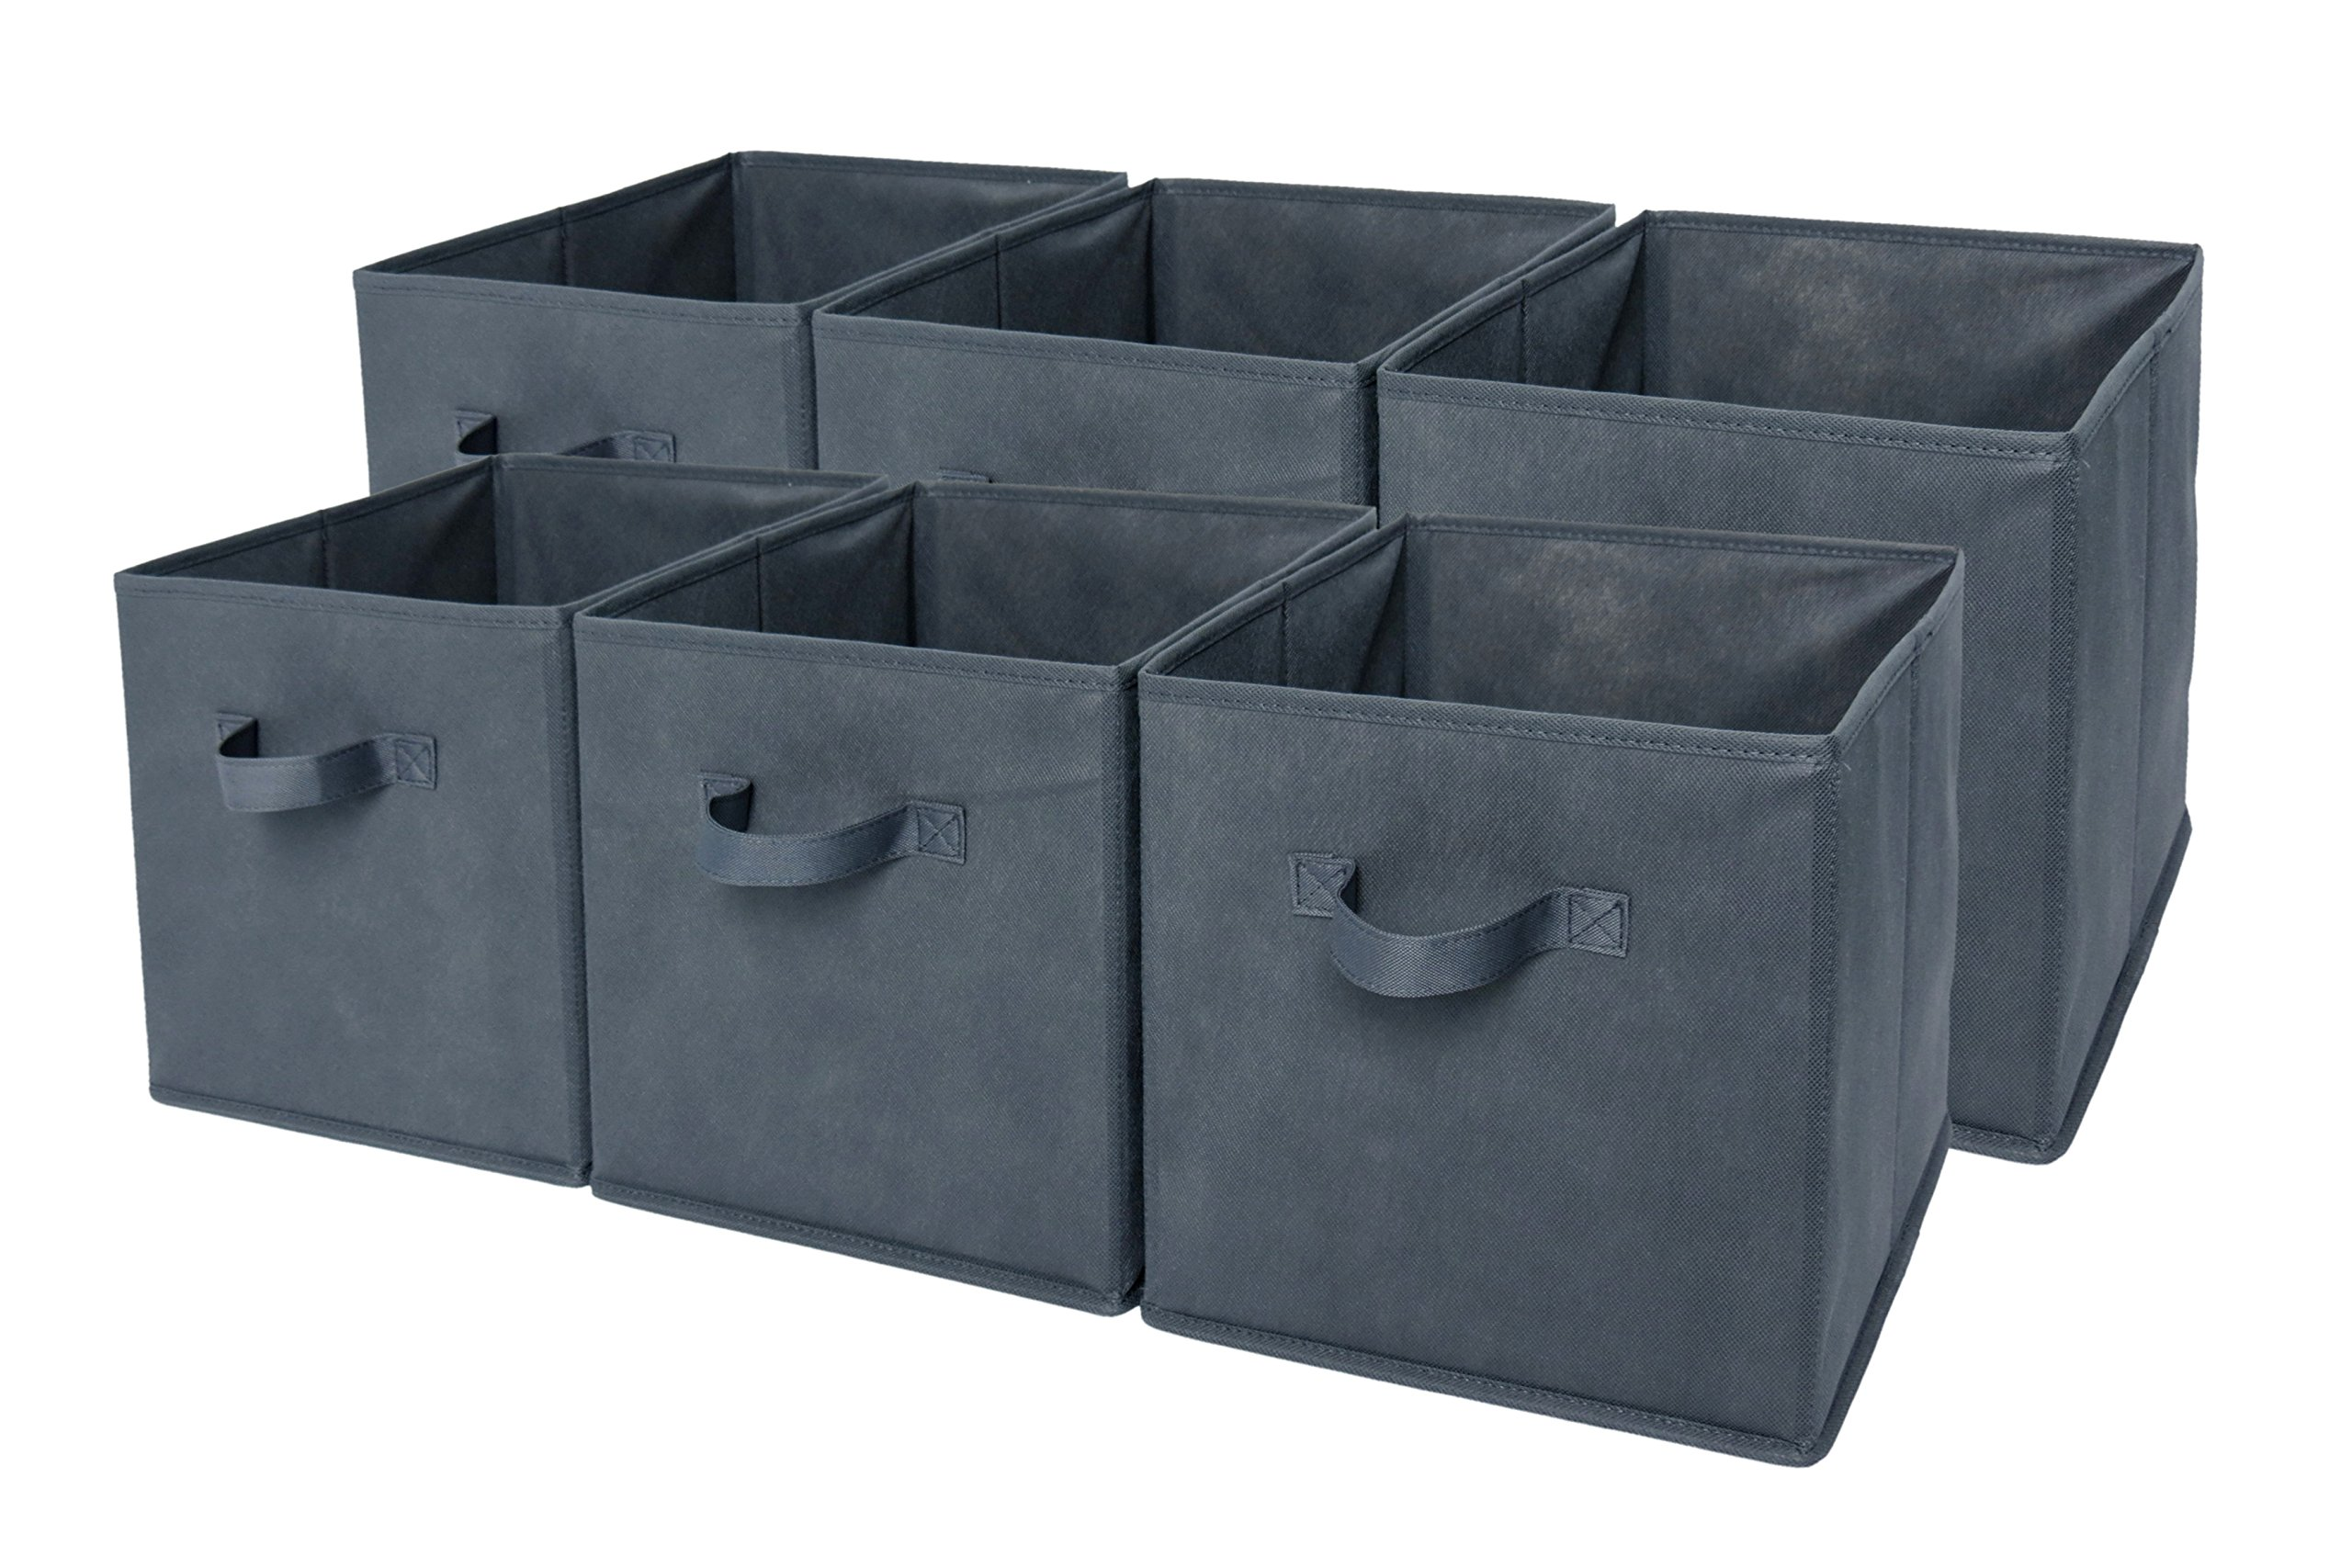 Sodynee Foldable Cloth Storage Cube Basket Bins Organizer Containers Drawers, 6 Pack, Grey